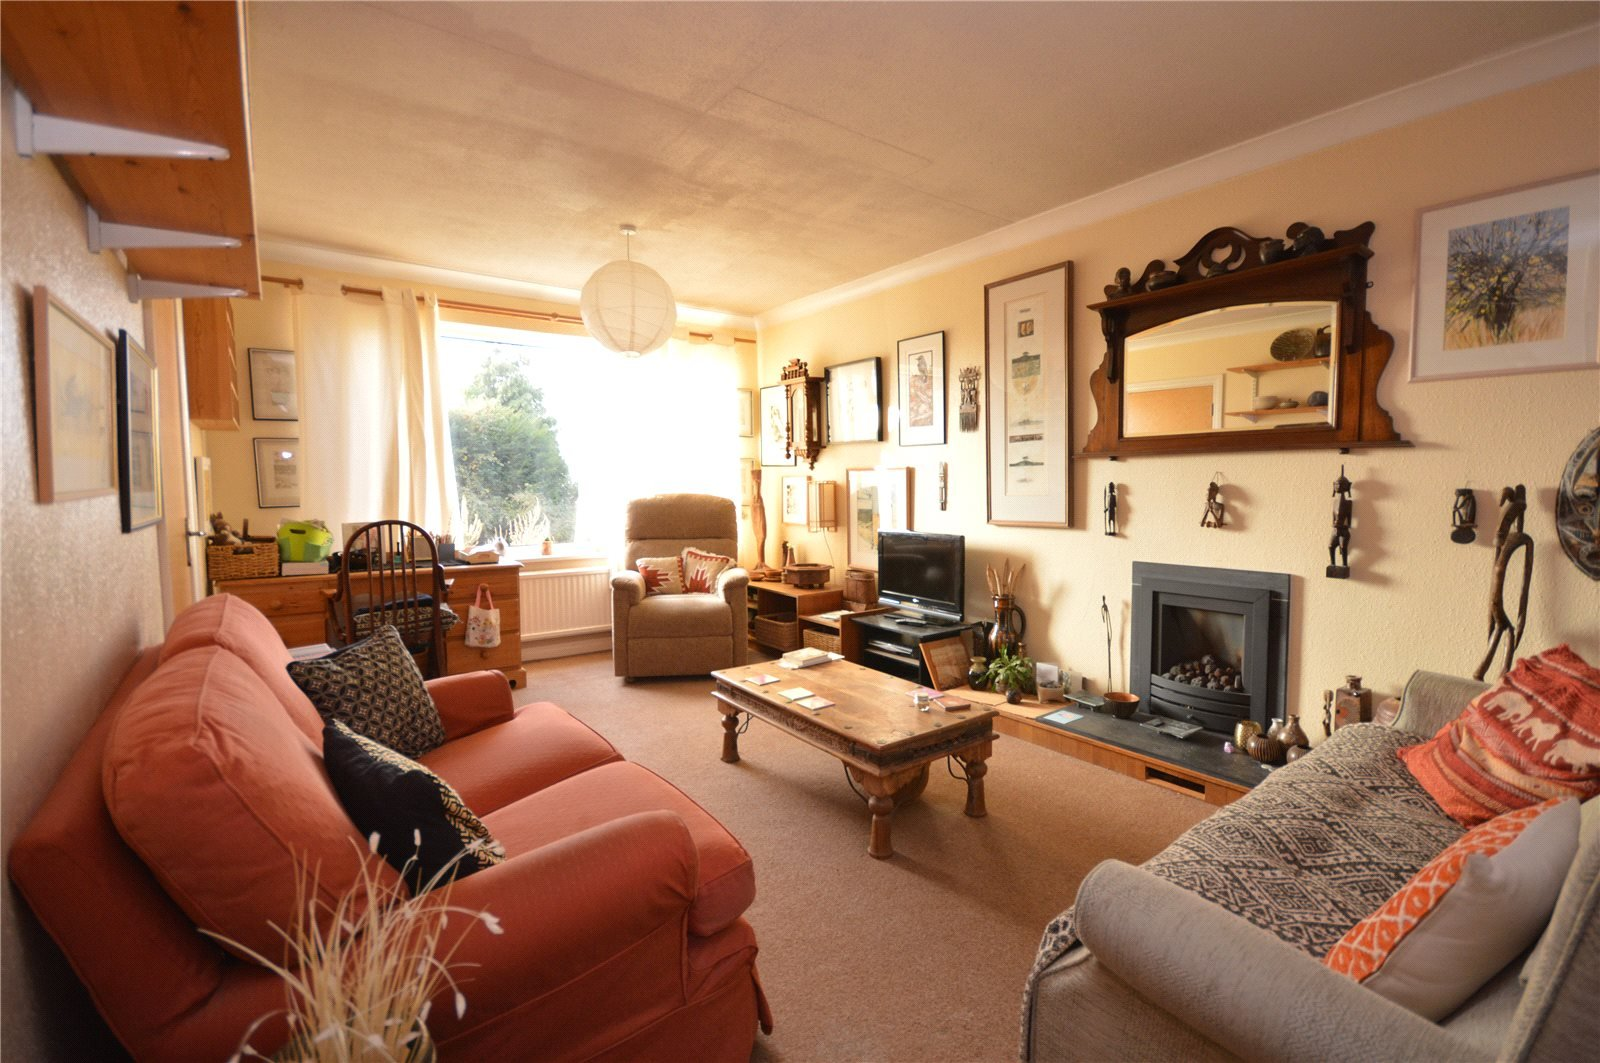 Property for sale in Wakefield, Interior spacious reception room three sofas